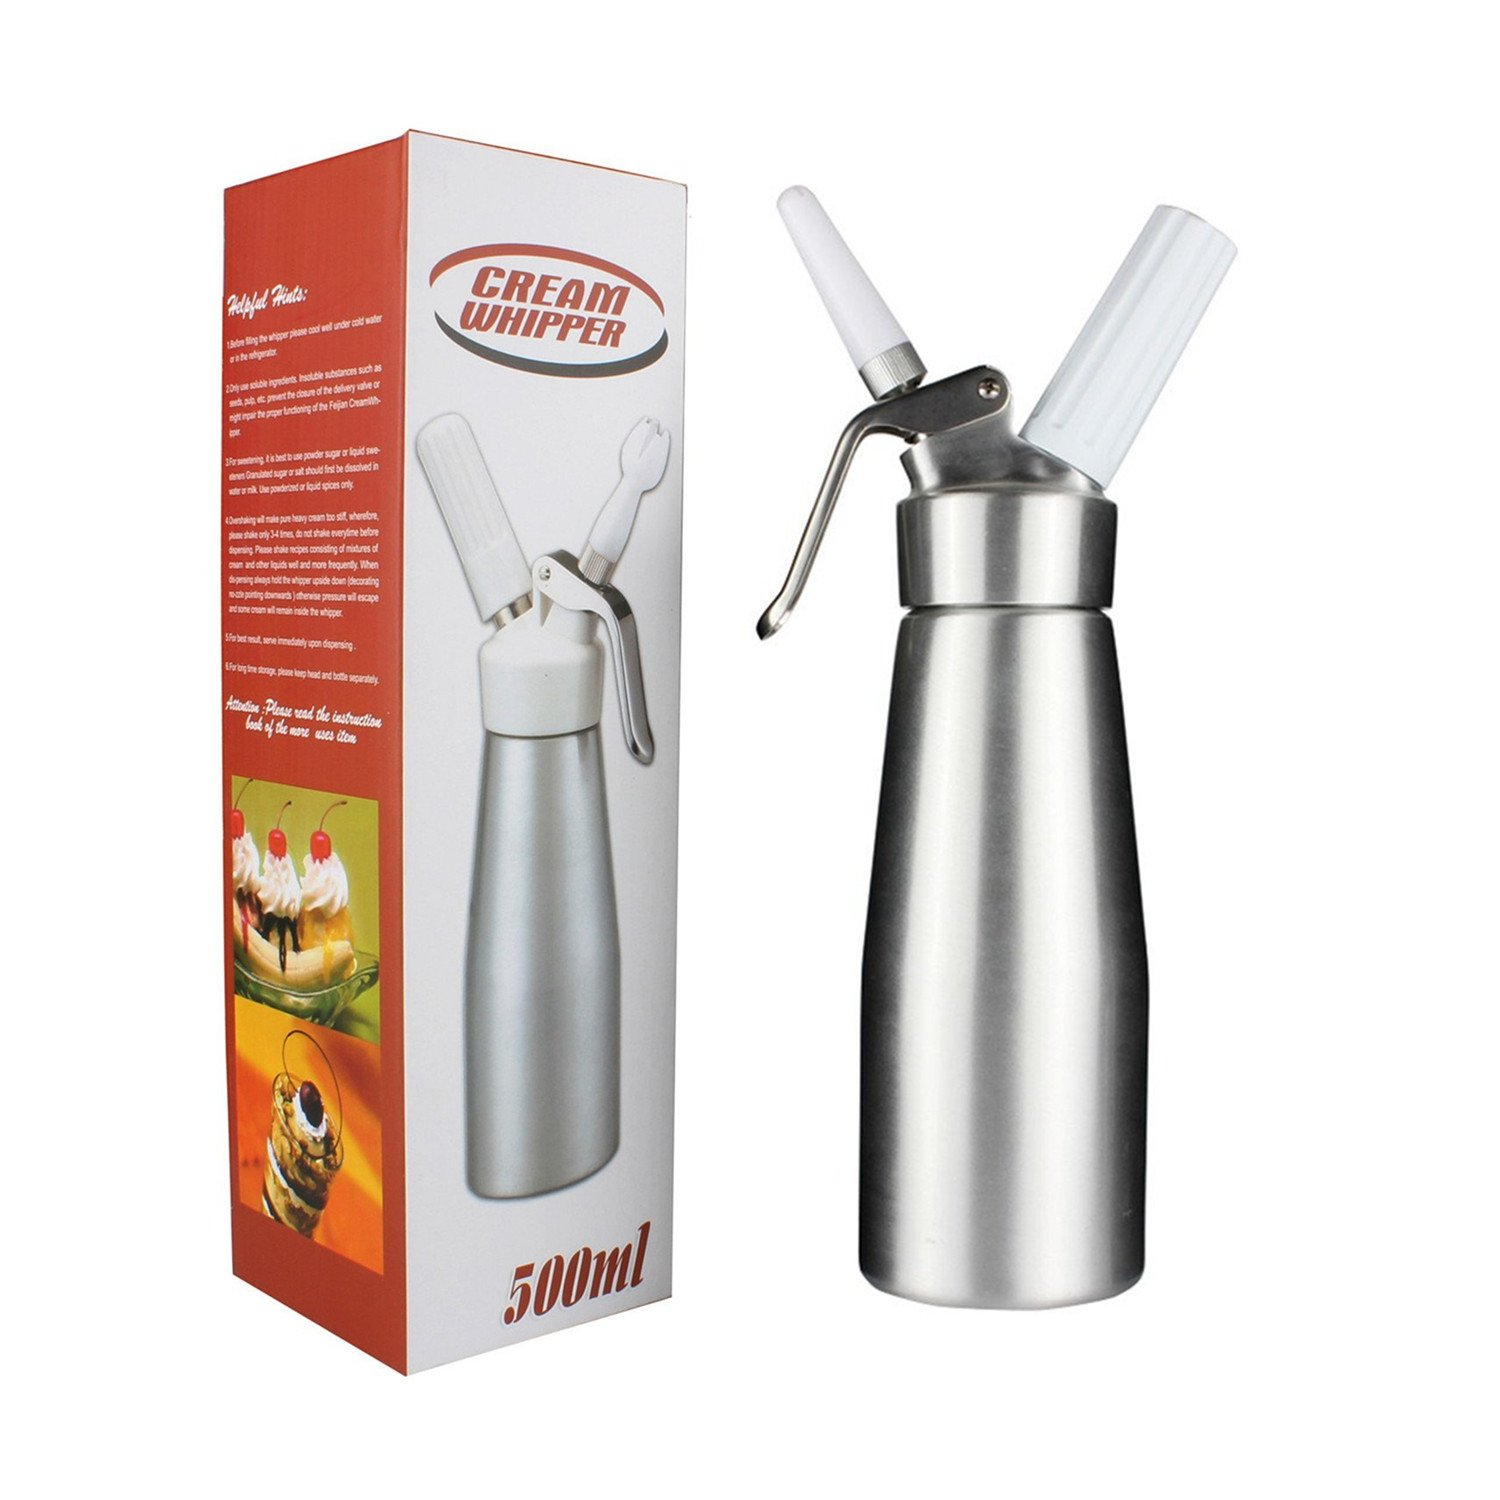 Professional Whipped Cream Dispenser by Sivaphe Homemade Cream Whipper Maker Cainster Aluminum 500ML/1 Pint Gifted 3 Decorating Plastic Nozzles Need N2O Chargers (not included)